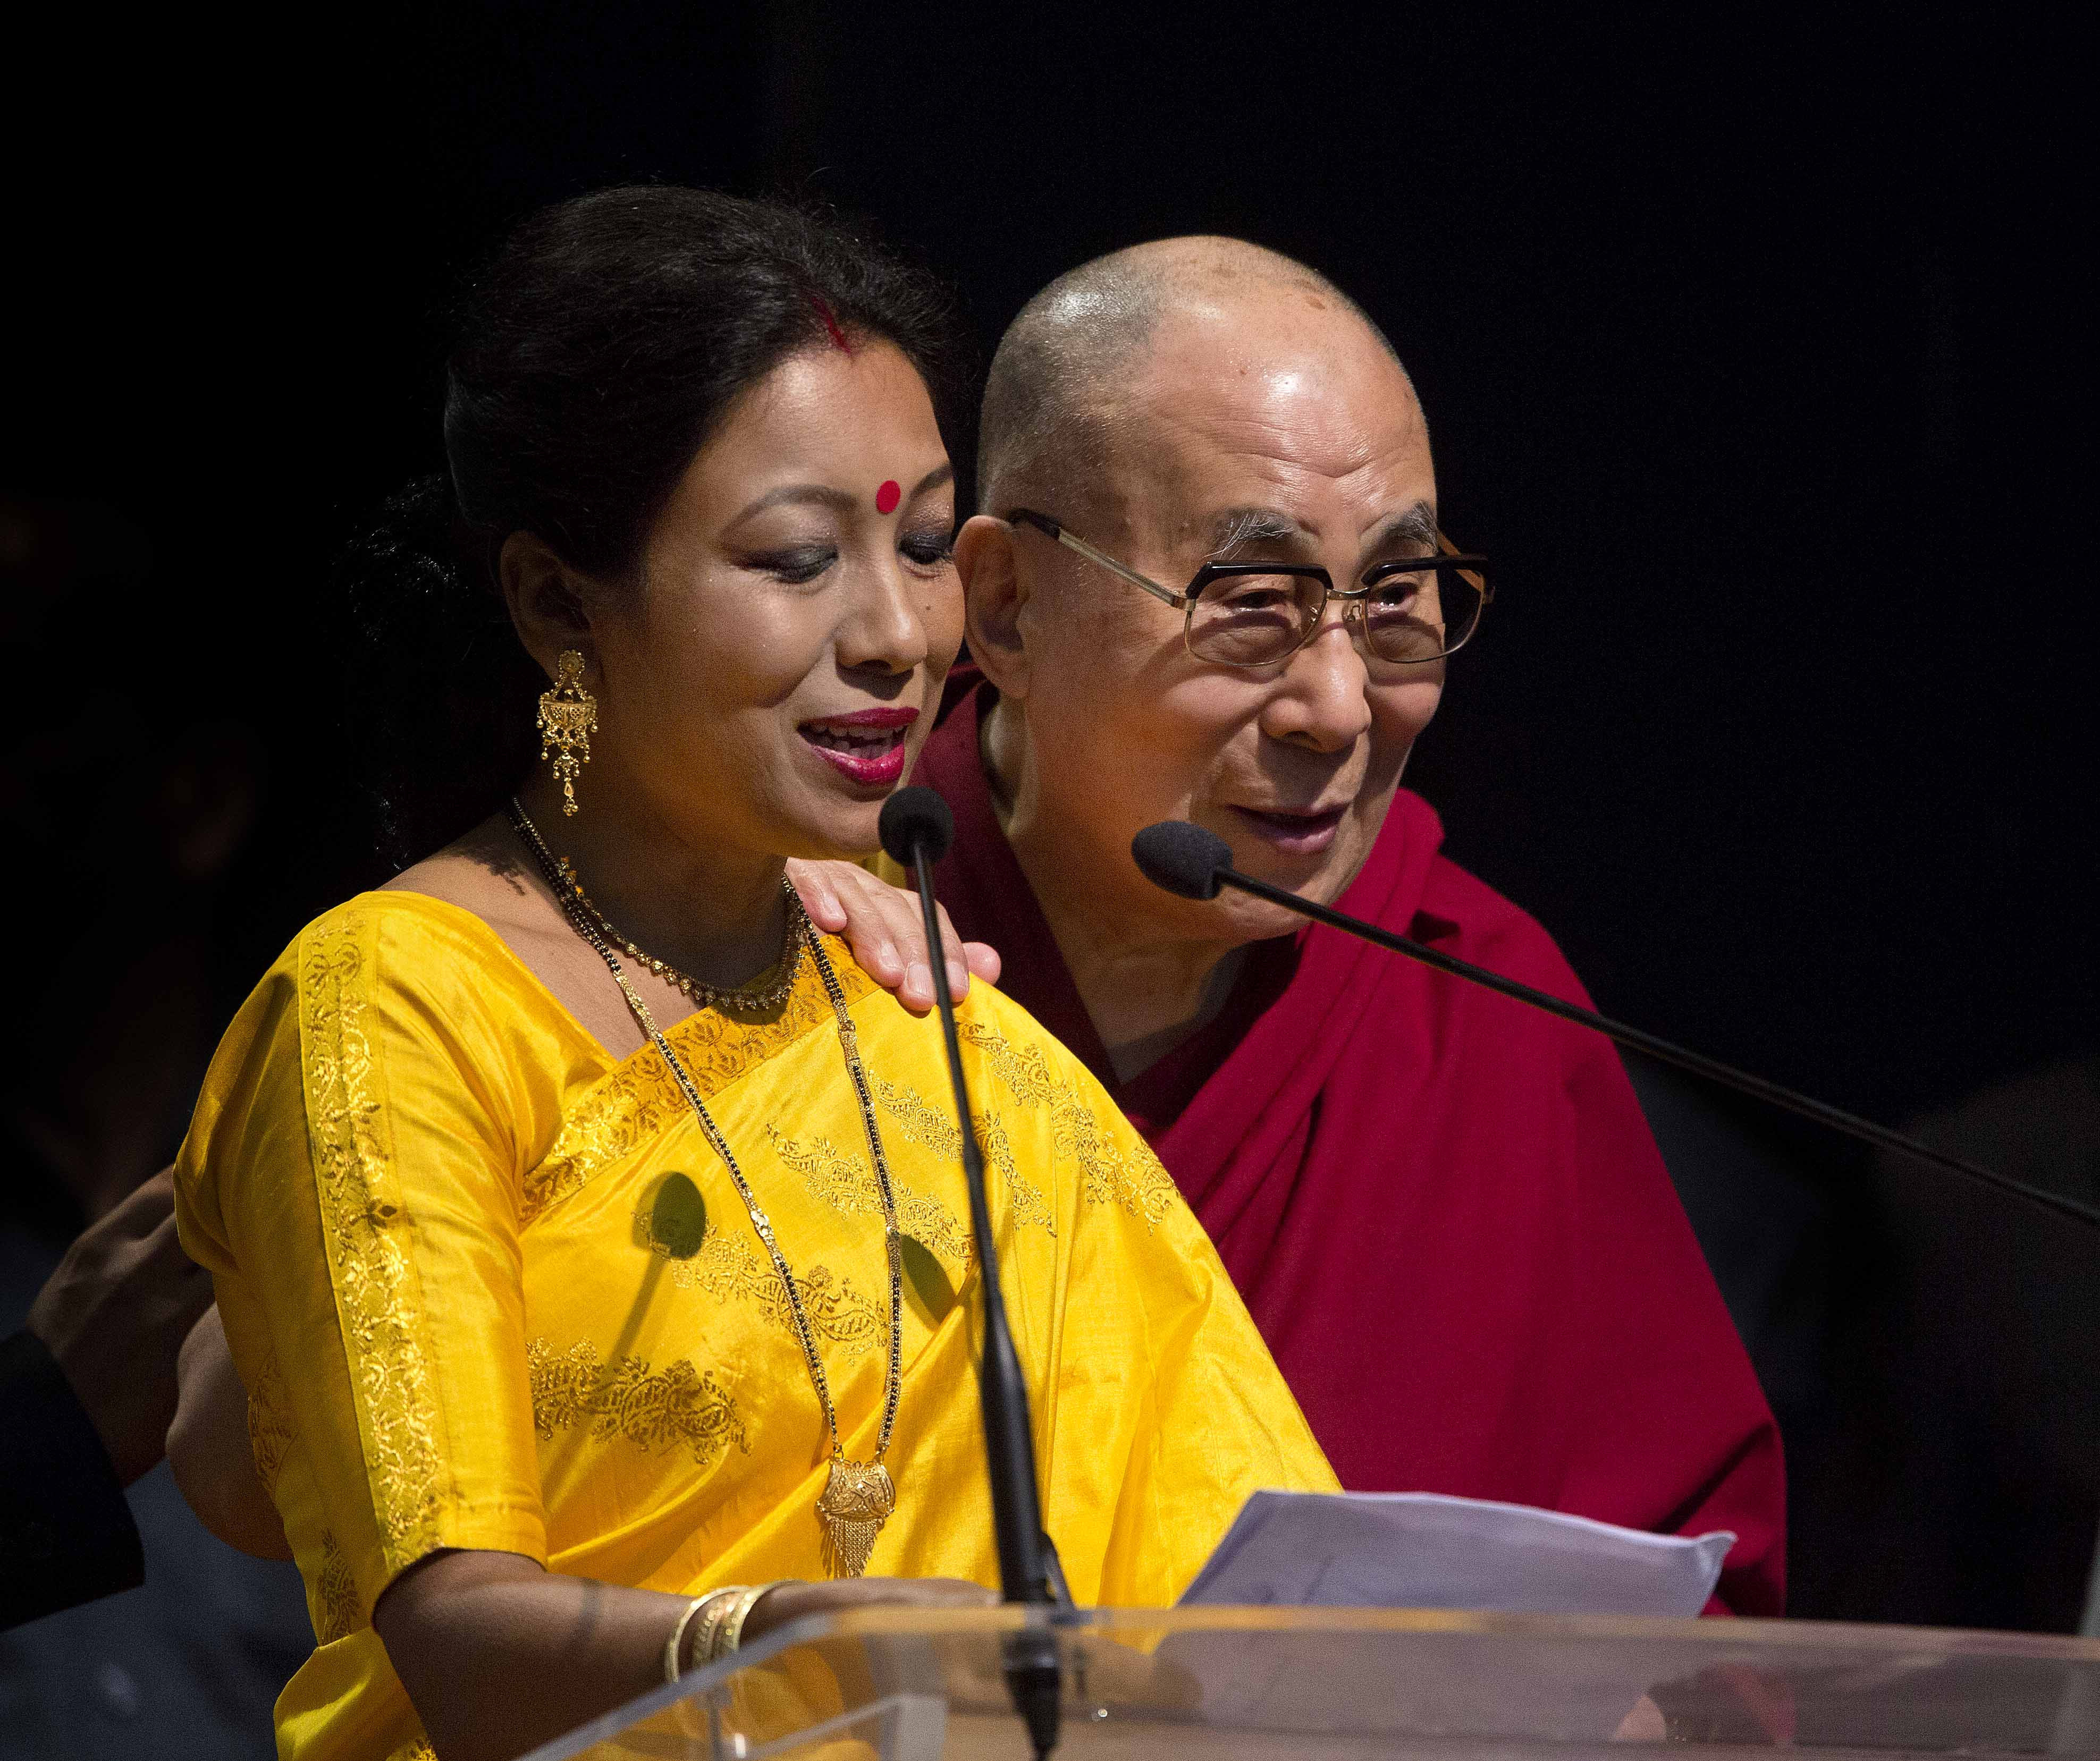 """Tibetan spiritual leader the Dalai Lama, right, listens to an Indian woman who was welcoming him prior to his lecture on """"Ancient Indian Knowledge in Modern Times"""" at the Gauhati university campus in Gauhati, north eastern Assam state, India, Sunday, April 2, 2017. (AP Photo/Anupam Nath)"""